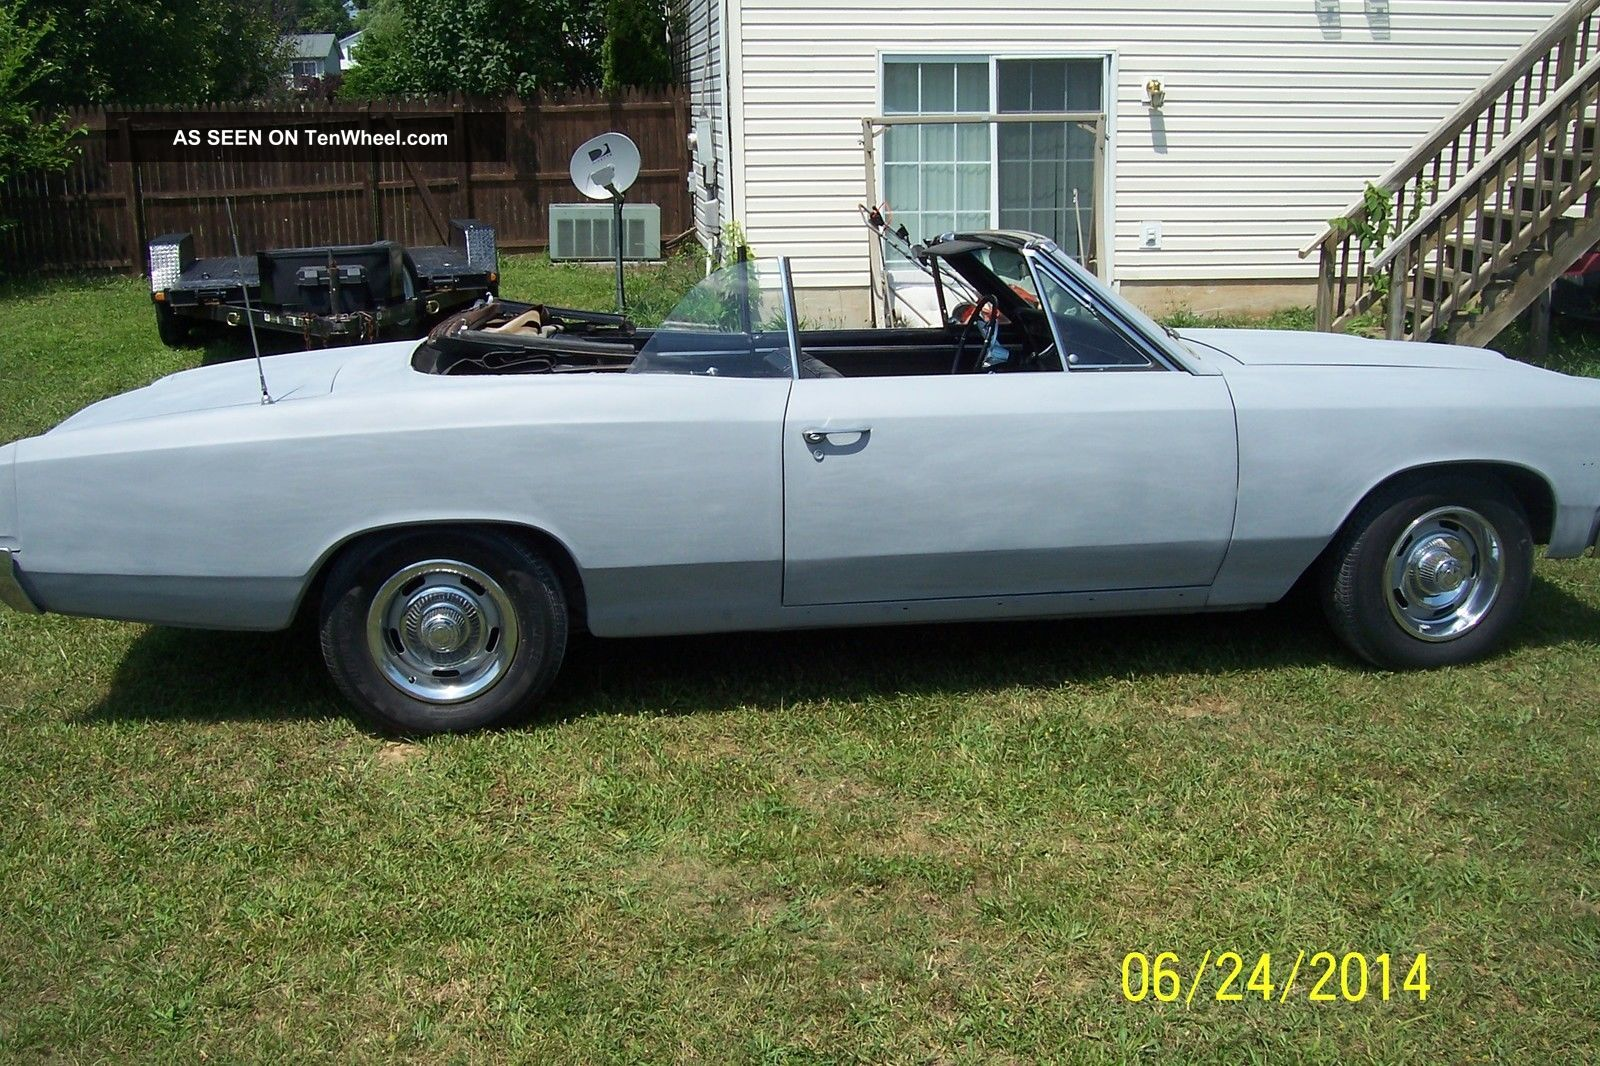 1966 Chevy Chevelle Malibu Ss Clone Cruiser Matching Numbers Runs Chevrolet And Drives